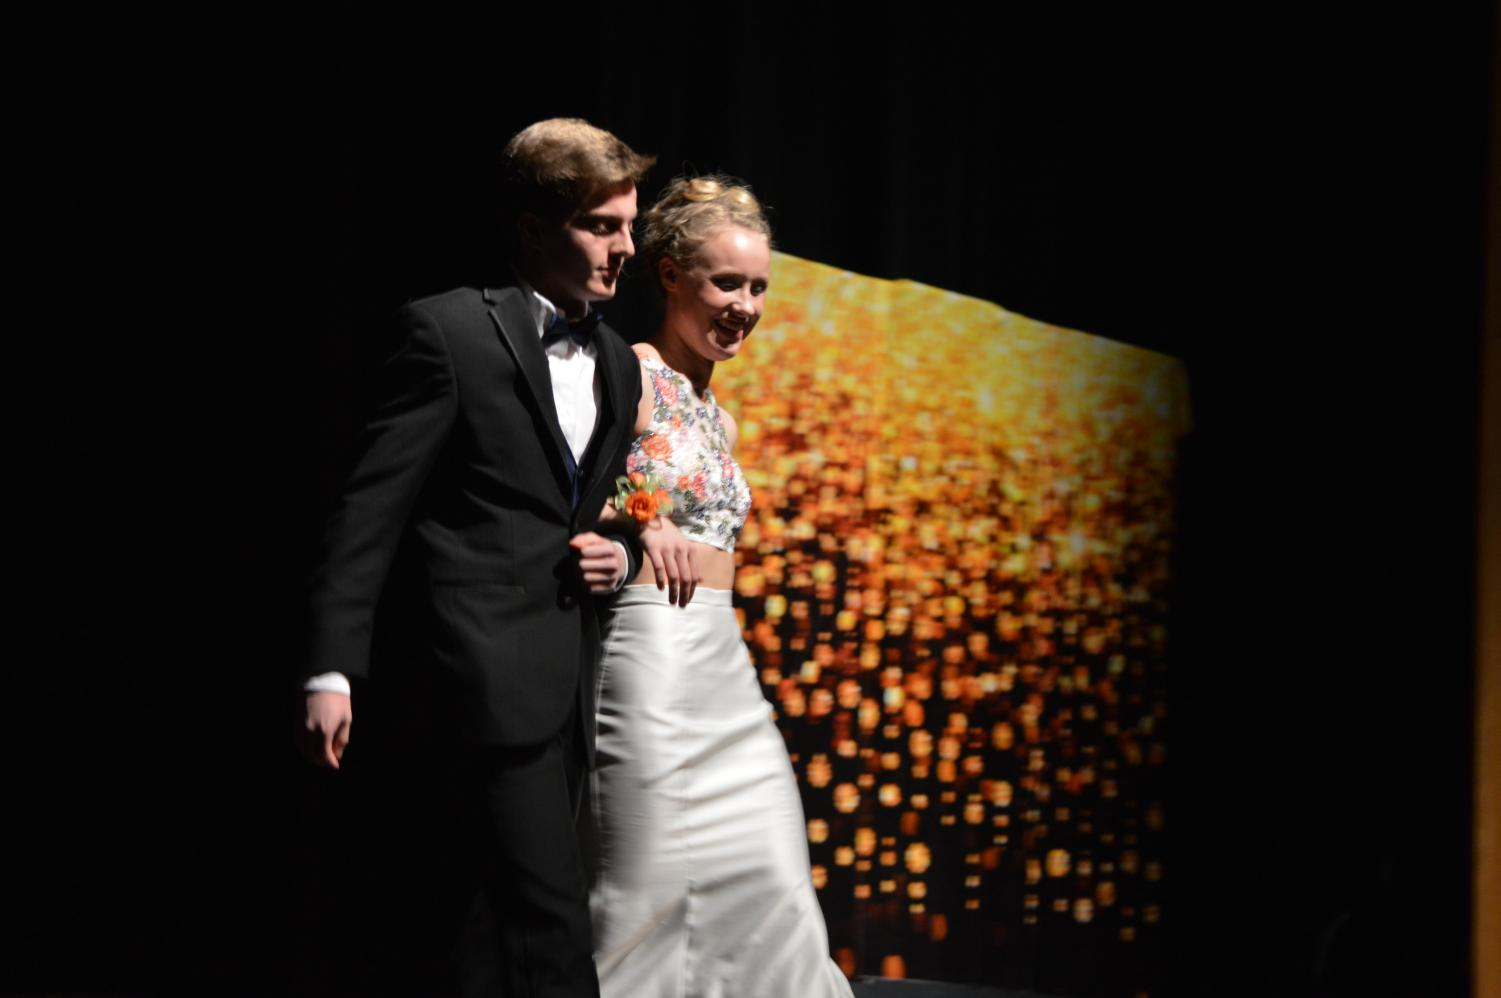 """Come to the Prom Fashion Show on Jan. 26 at 7 p.m for only $10. Prom Fashion show is Key Club's largest event and raised a lot of money for the March of Dimes last year. """"Prom Fashion Show is an event that benefits the March of Dimes, an organization the helps women with prenatal care and premature babies,"""" co-committee chair Virginia Babcock said. Photo courtesy of Zoe Huff."""